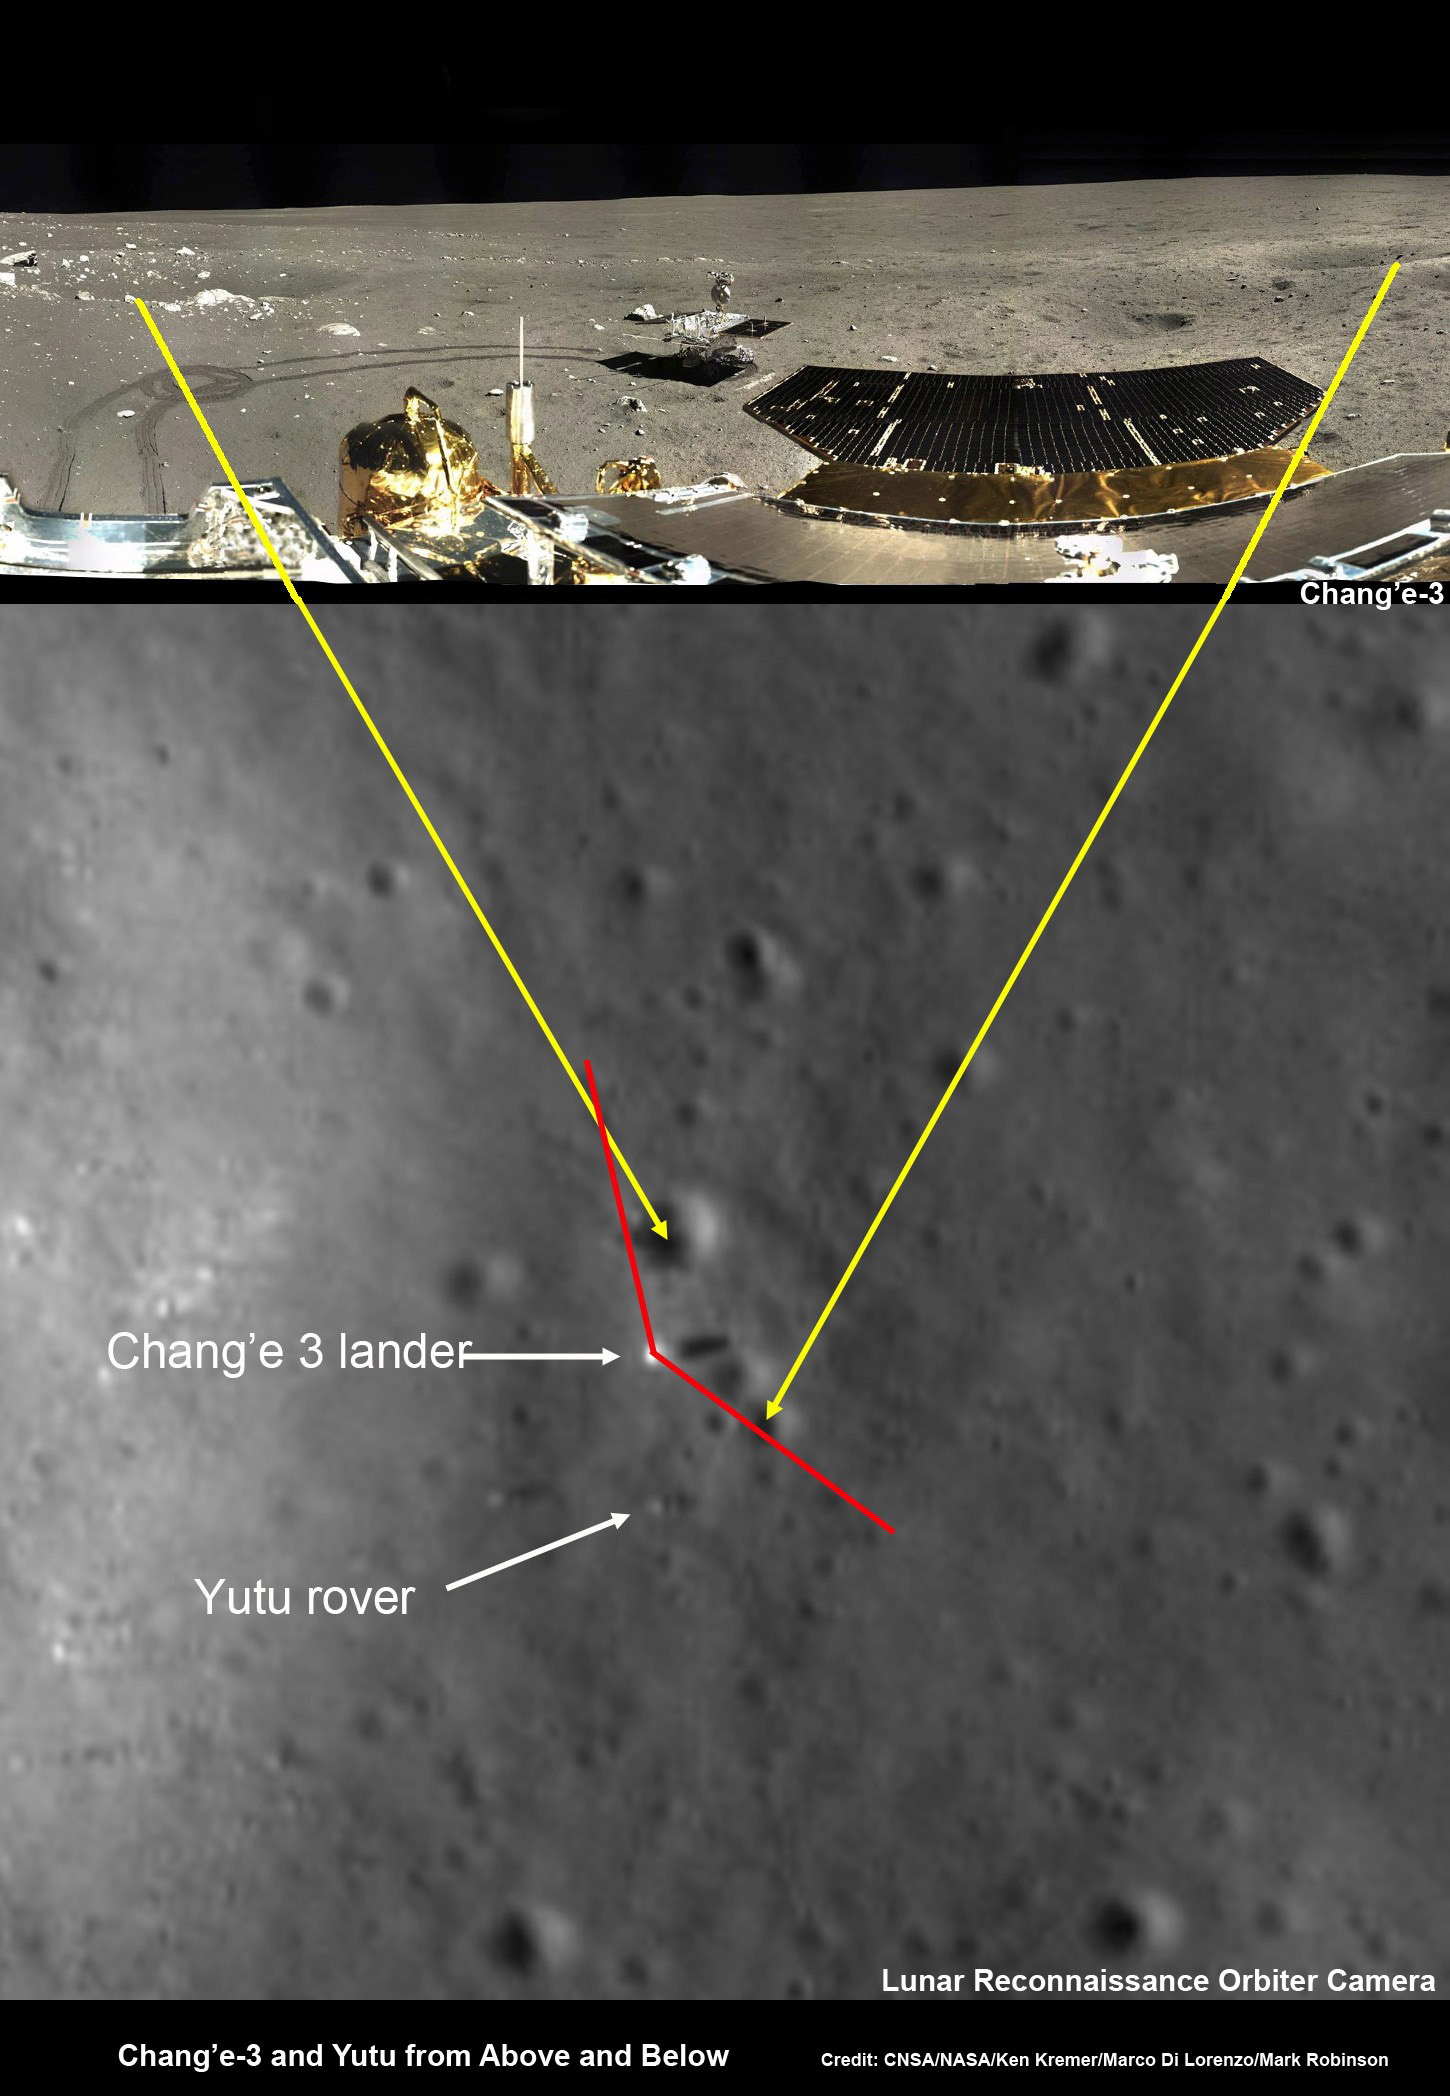 Chang'e-3 lander and Yutu rover – from Above And Below  Composite view shows China's Chang'e-3 lander and Yutu rover from Above And Below (orbit and surface) – lander color panorama (top) and orbital view from NASA's LRO orbiter (bottom). Chang'e-3 lander color panorama shows Yutu rover after it drove down the ramp to the moon's surface and began driving around the landers right side to the south. Yellow lines connect craters seen in the lander panorama and the LROC image from LRO (taken at a later date after the rover had moved), red lines indicate approximate field of view of the lander panorama. Credit: CNSA/NASA/Ken Kremer/Marco Di Lorenzo/Mark Robinson